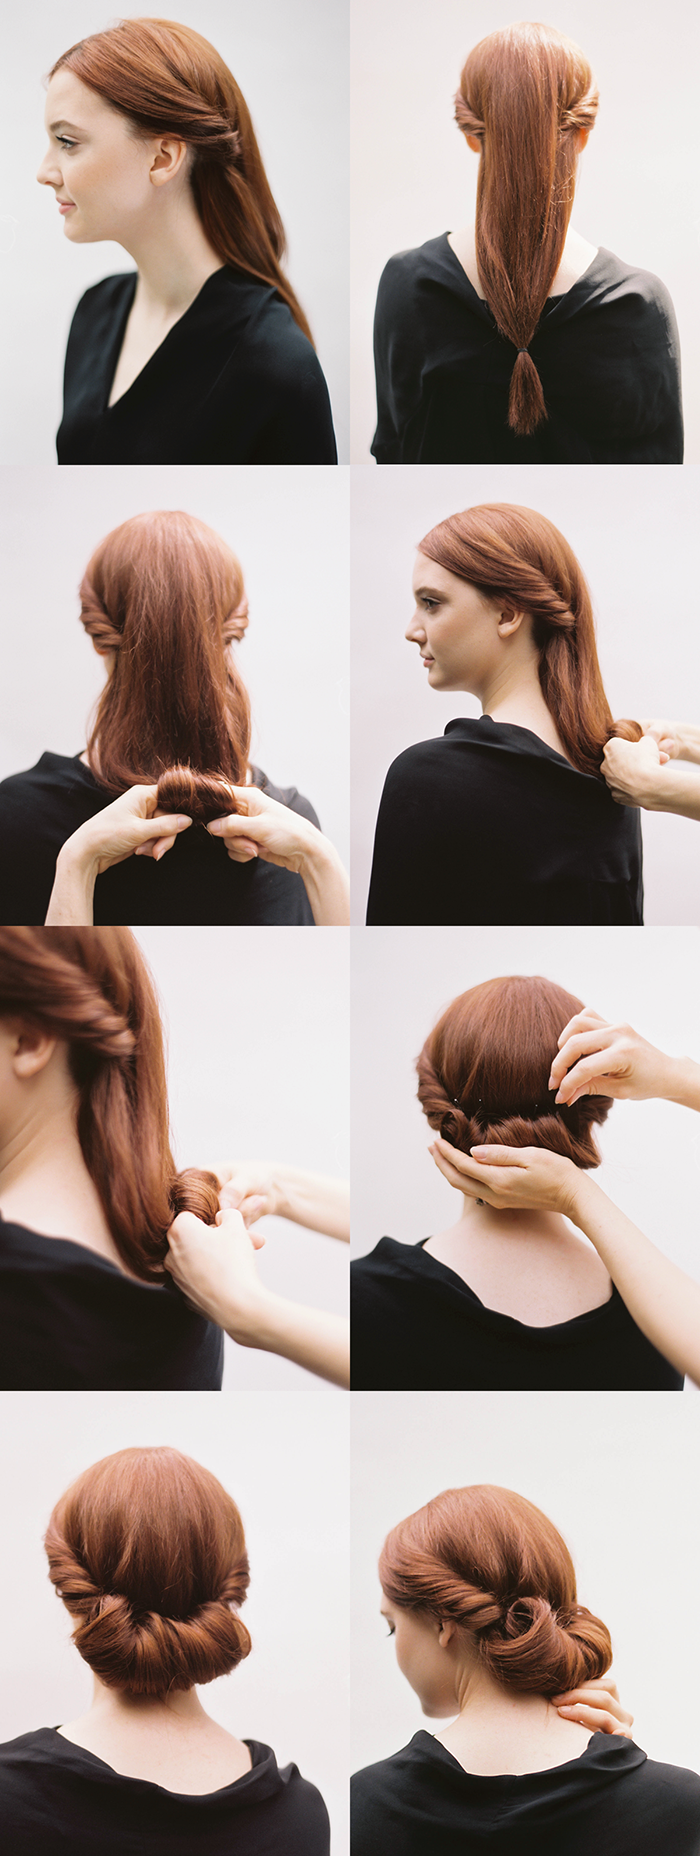 diy rolled chignon hair tutorial | hair inspirations